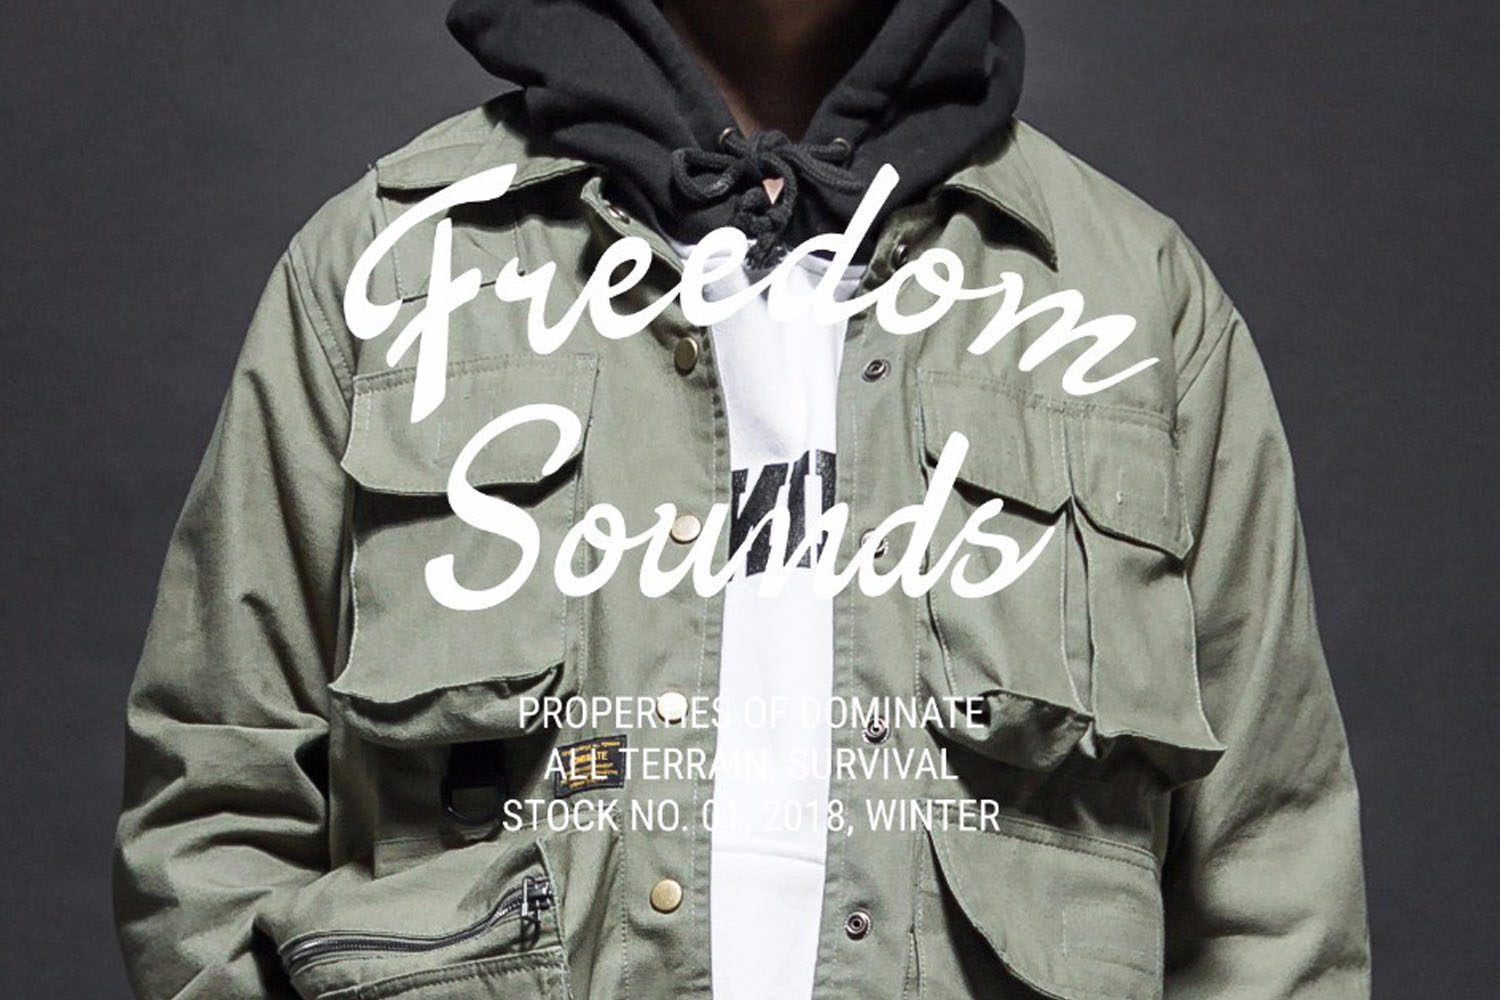 DOMINATE AW 18 FREEDOM SOUND 3